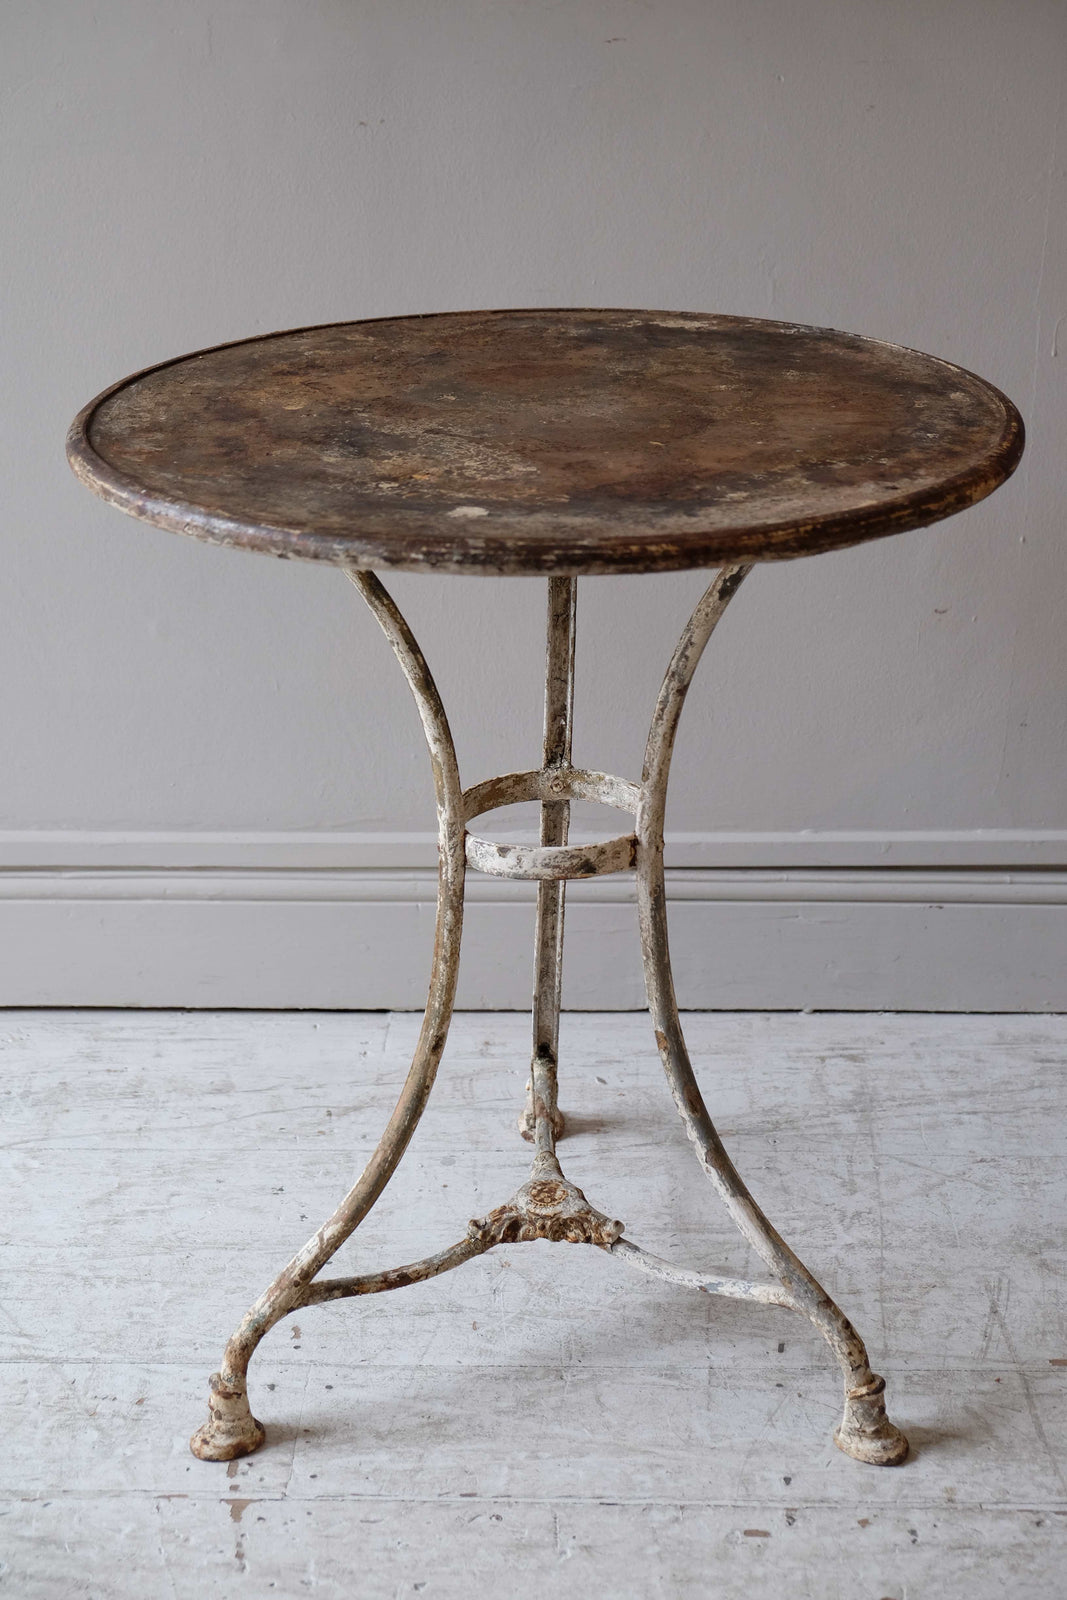 19th C. Metal Arras Table